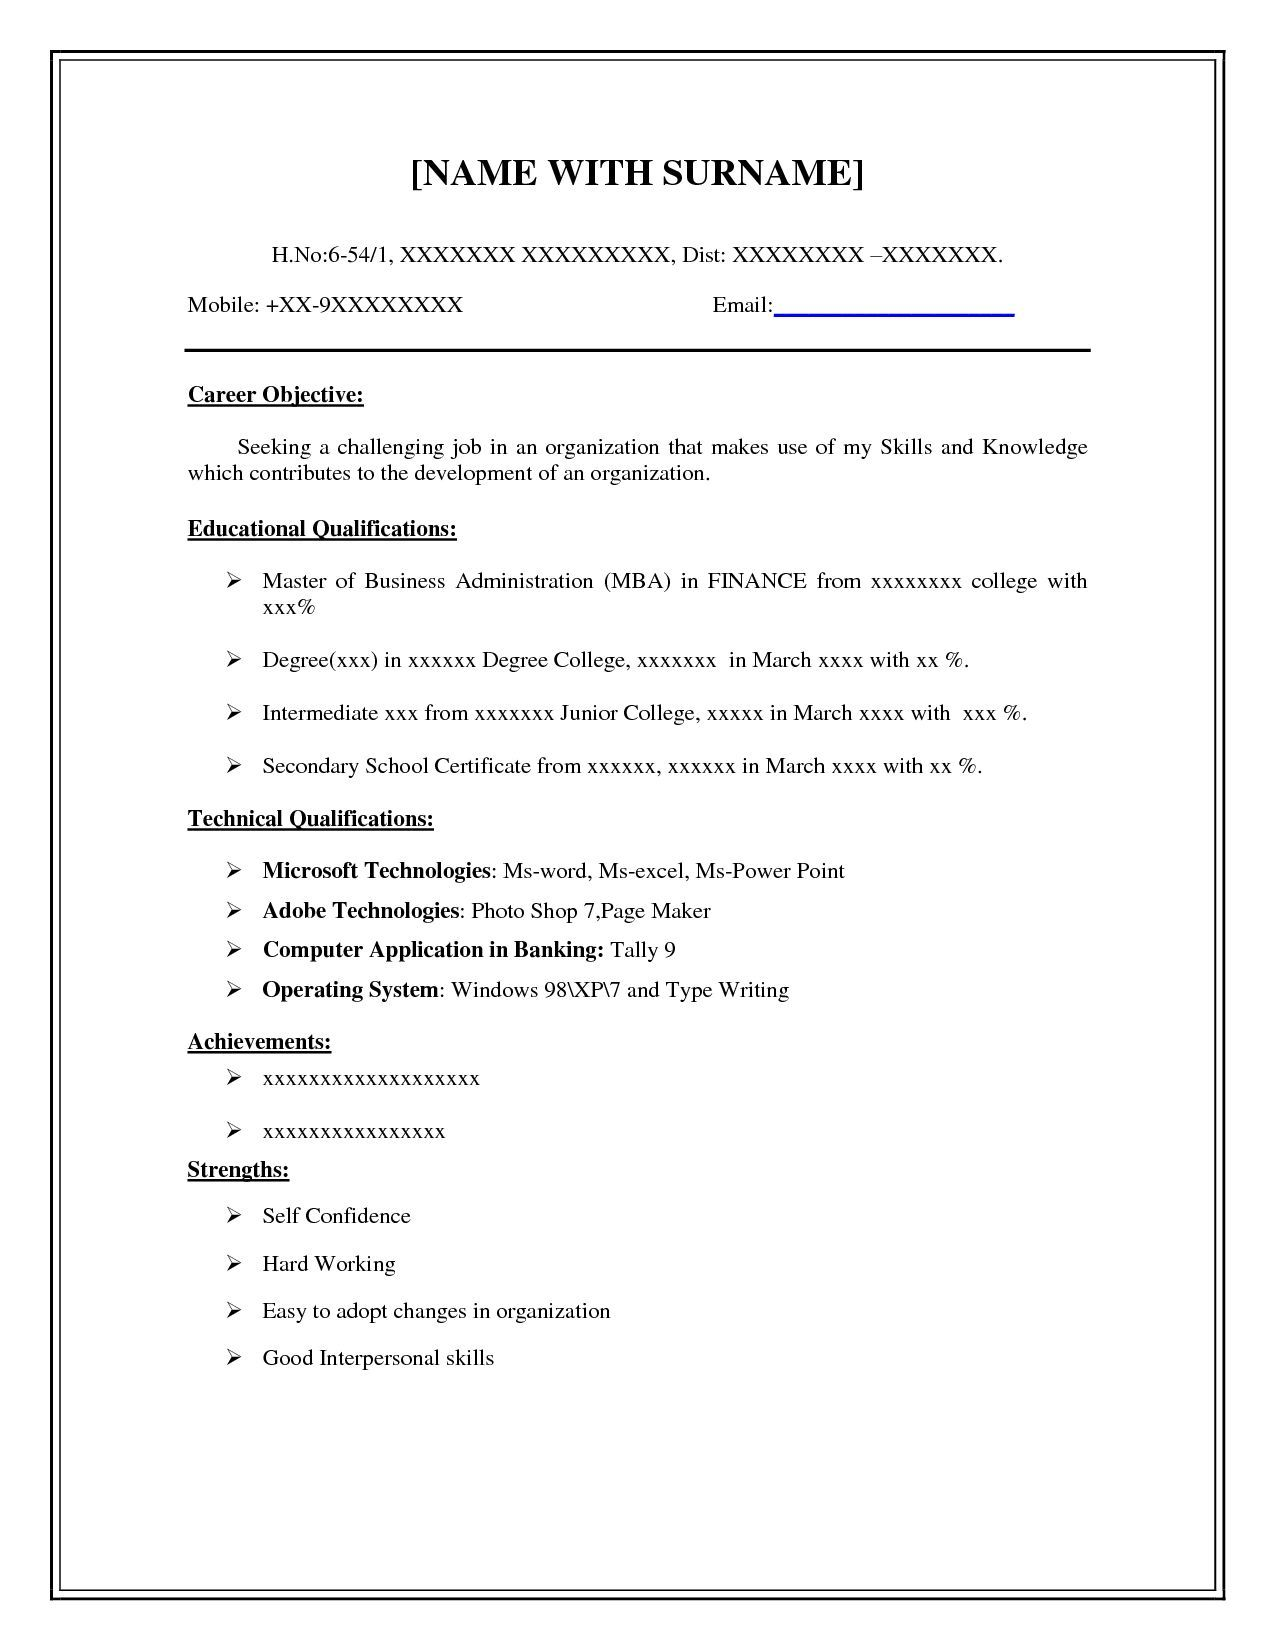 Resume Blank Format Easy And Free Resume Templates Resume Templates Free Simple